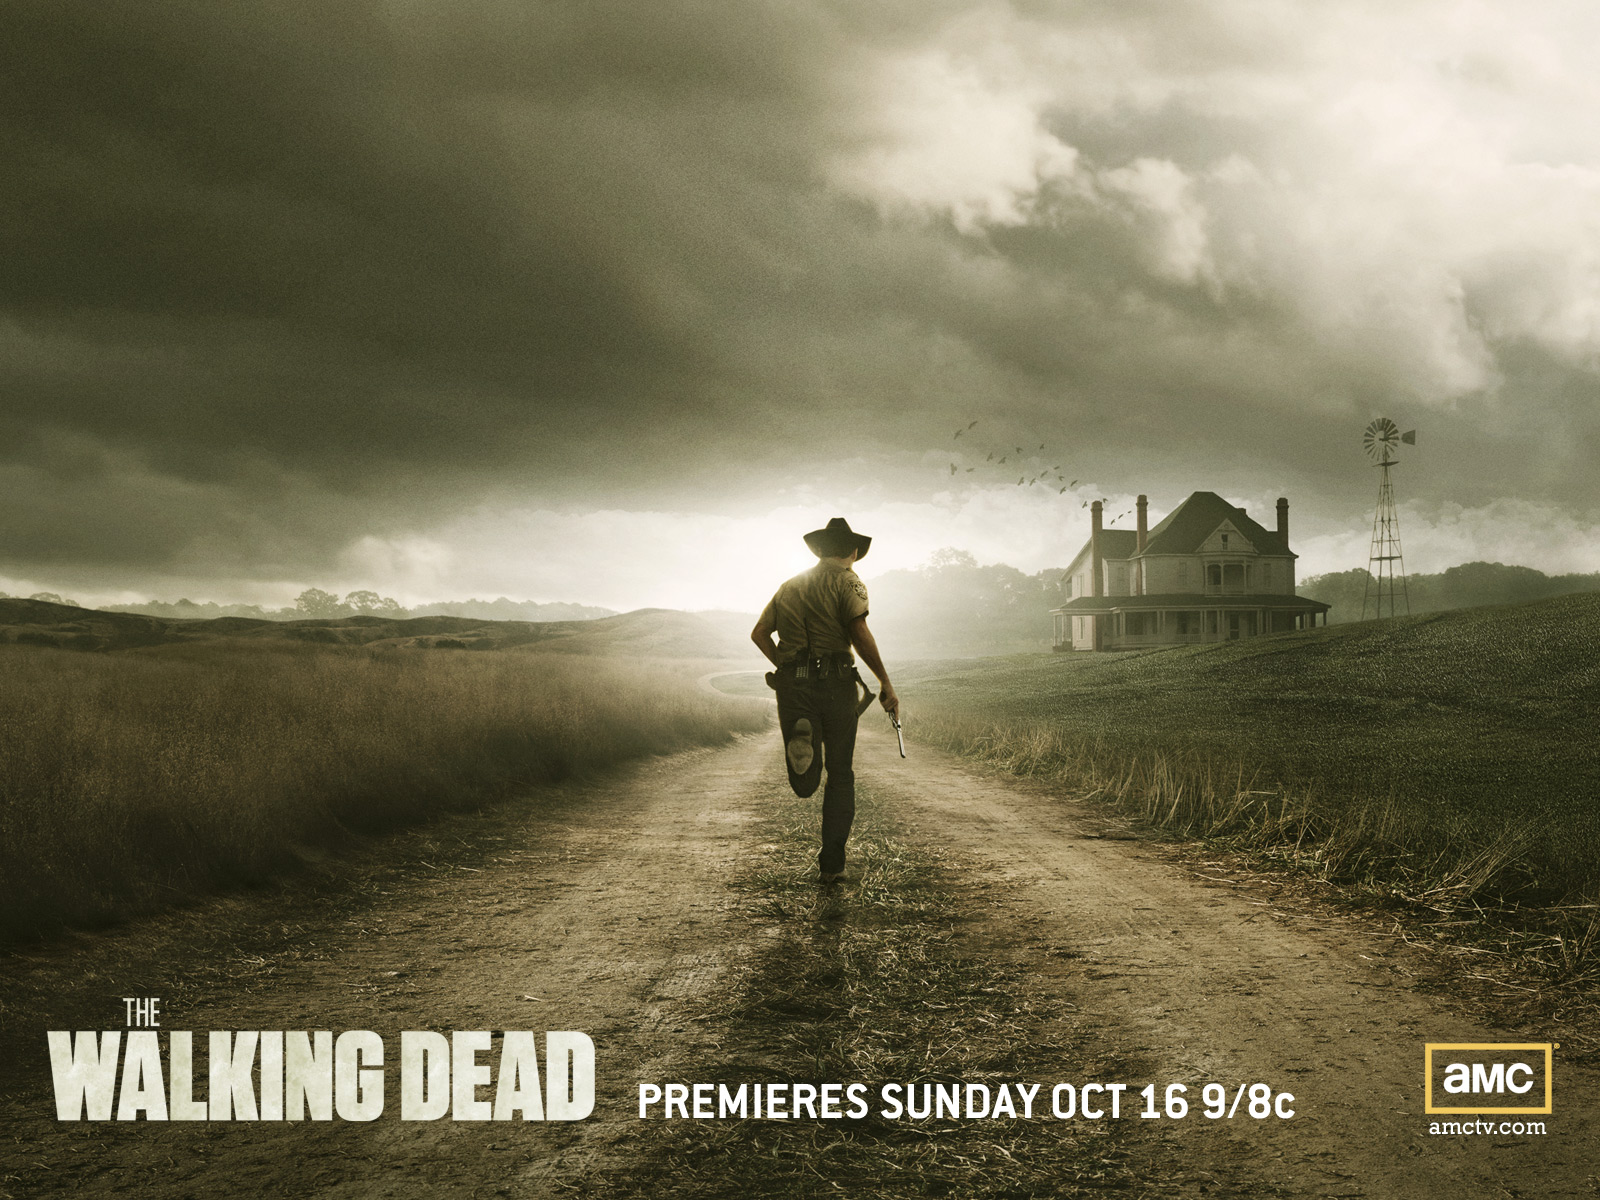 http://3.bp.blogspot.com/-RfduYmh0VKE/TtS1EDHkyYI/AAAAAAAAGgw/CqeOq6WTO8I/s1600/The-Walking-Dead-Wallpapers-Season2-Granja.jpg